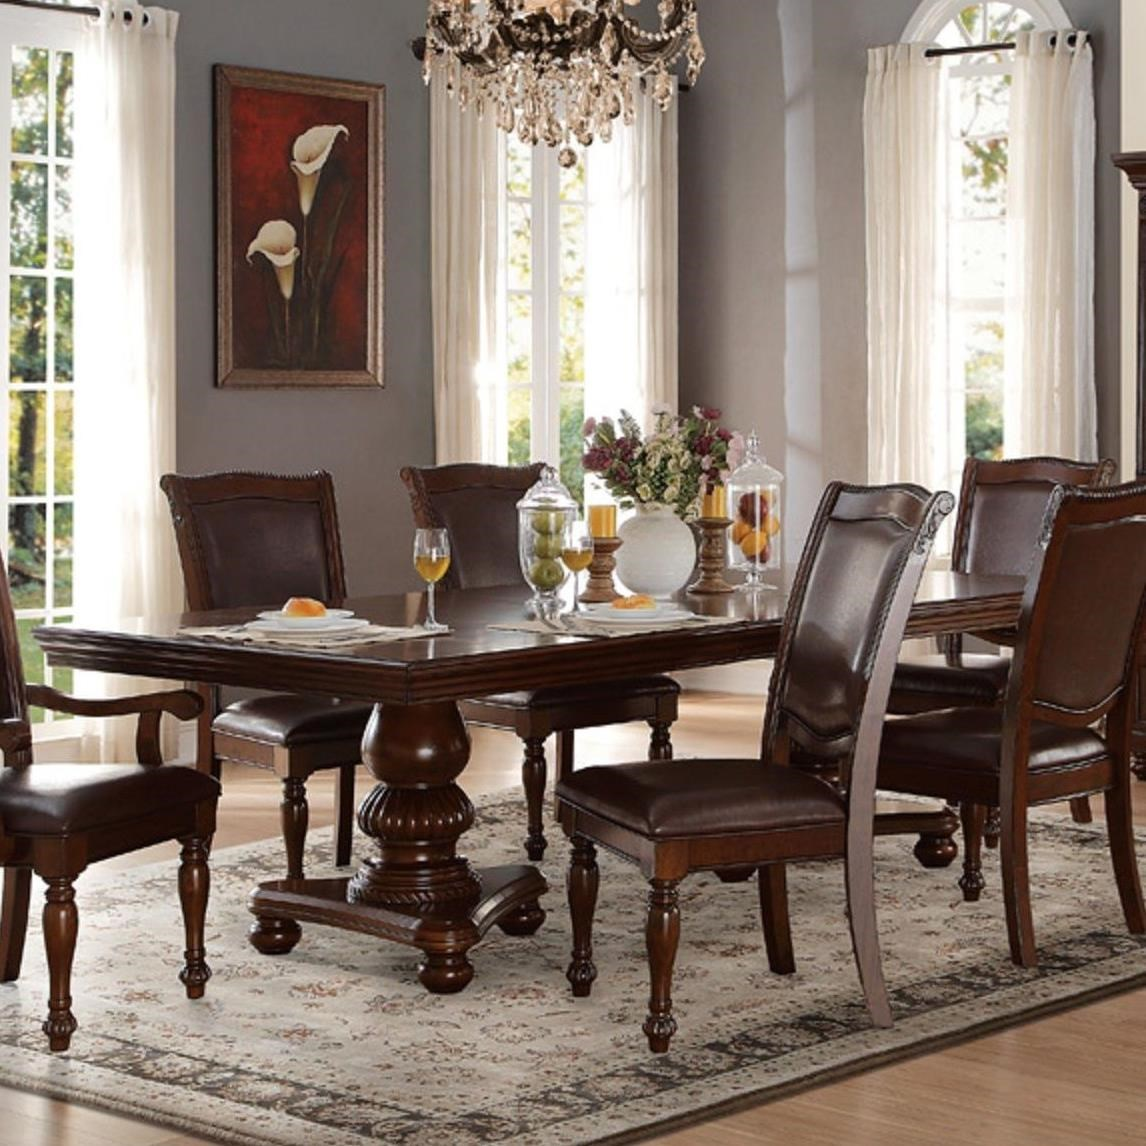 Lordsburg Double Pedestal Dining Table by Homelegance at Darvin Furniture